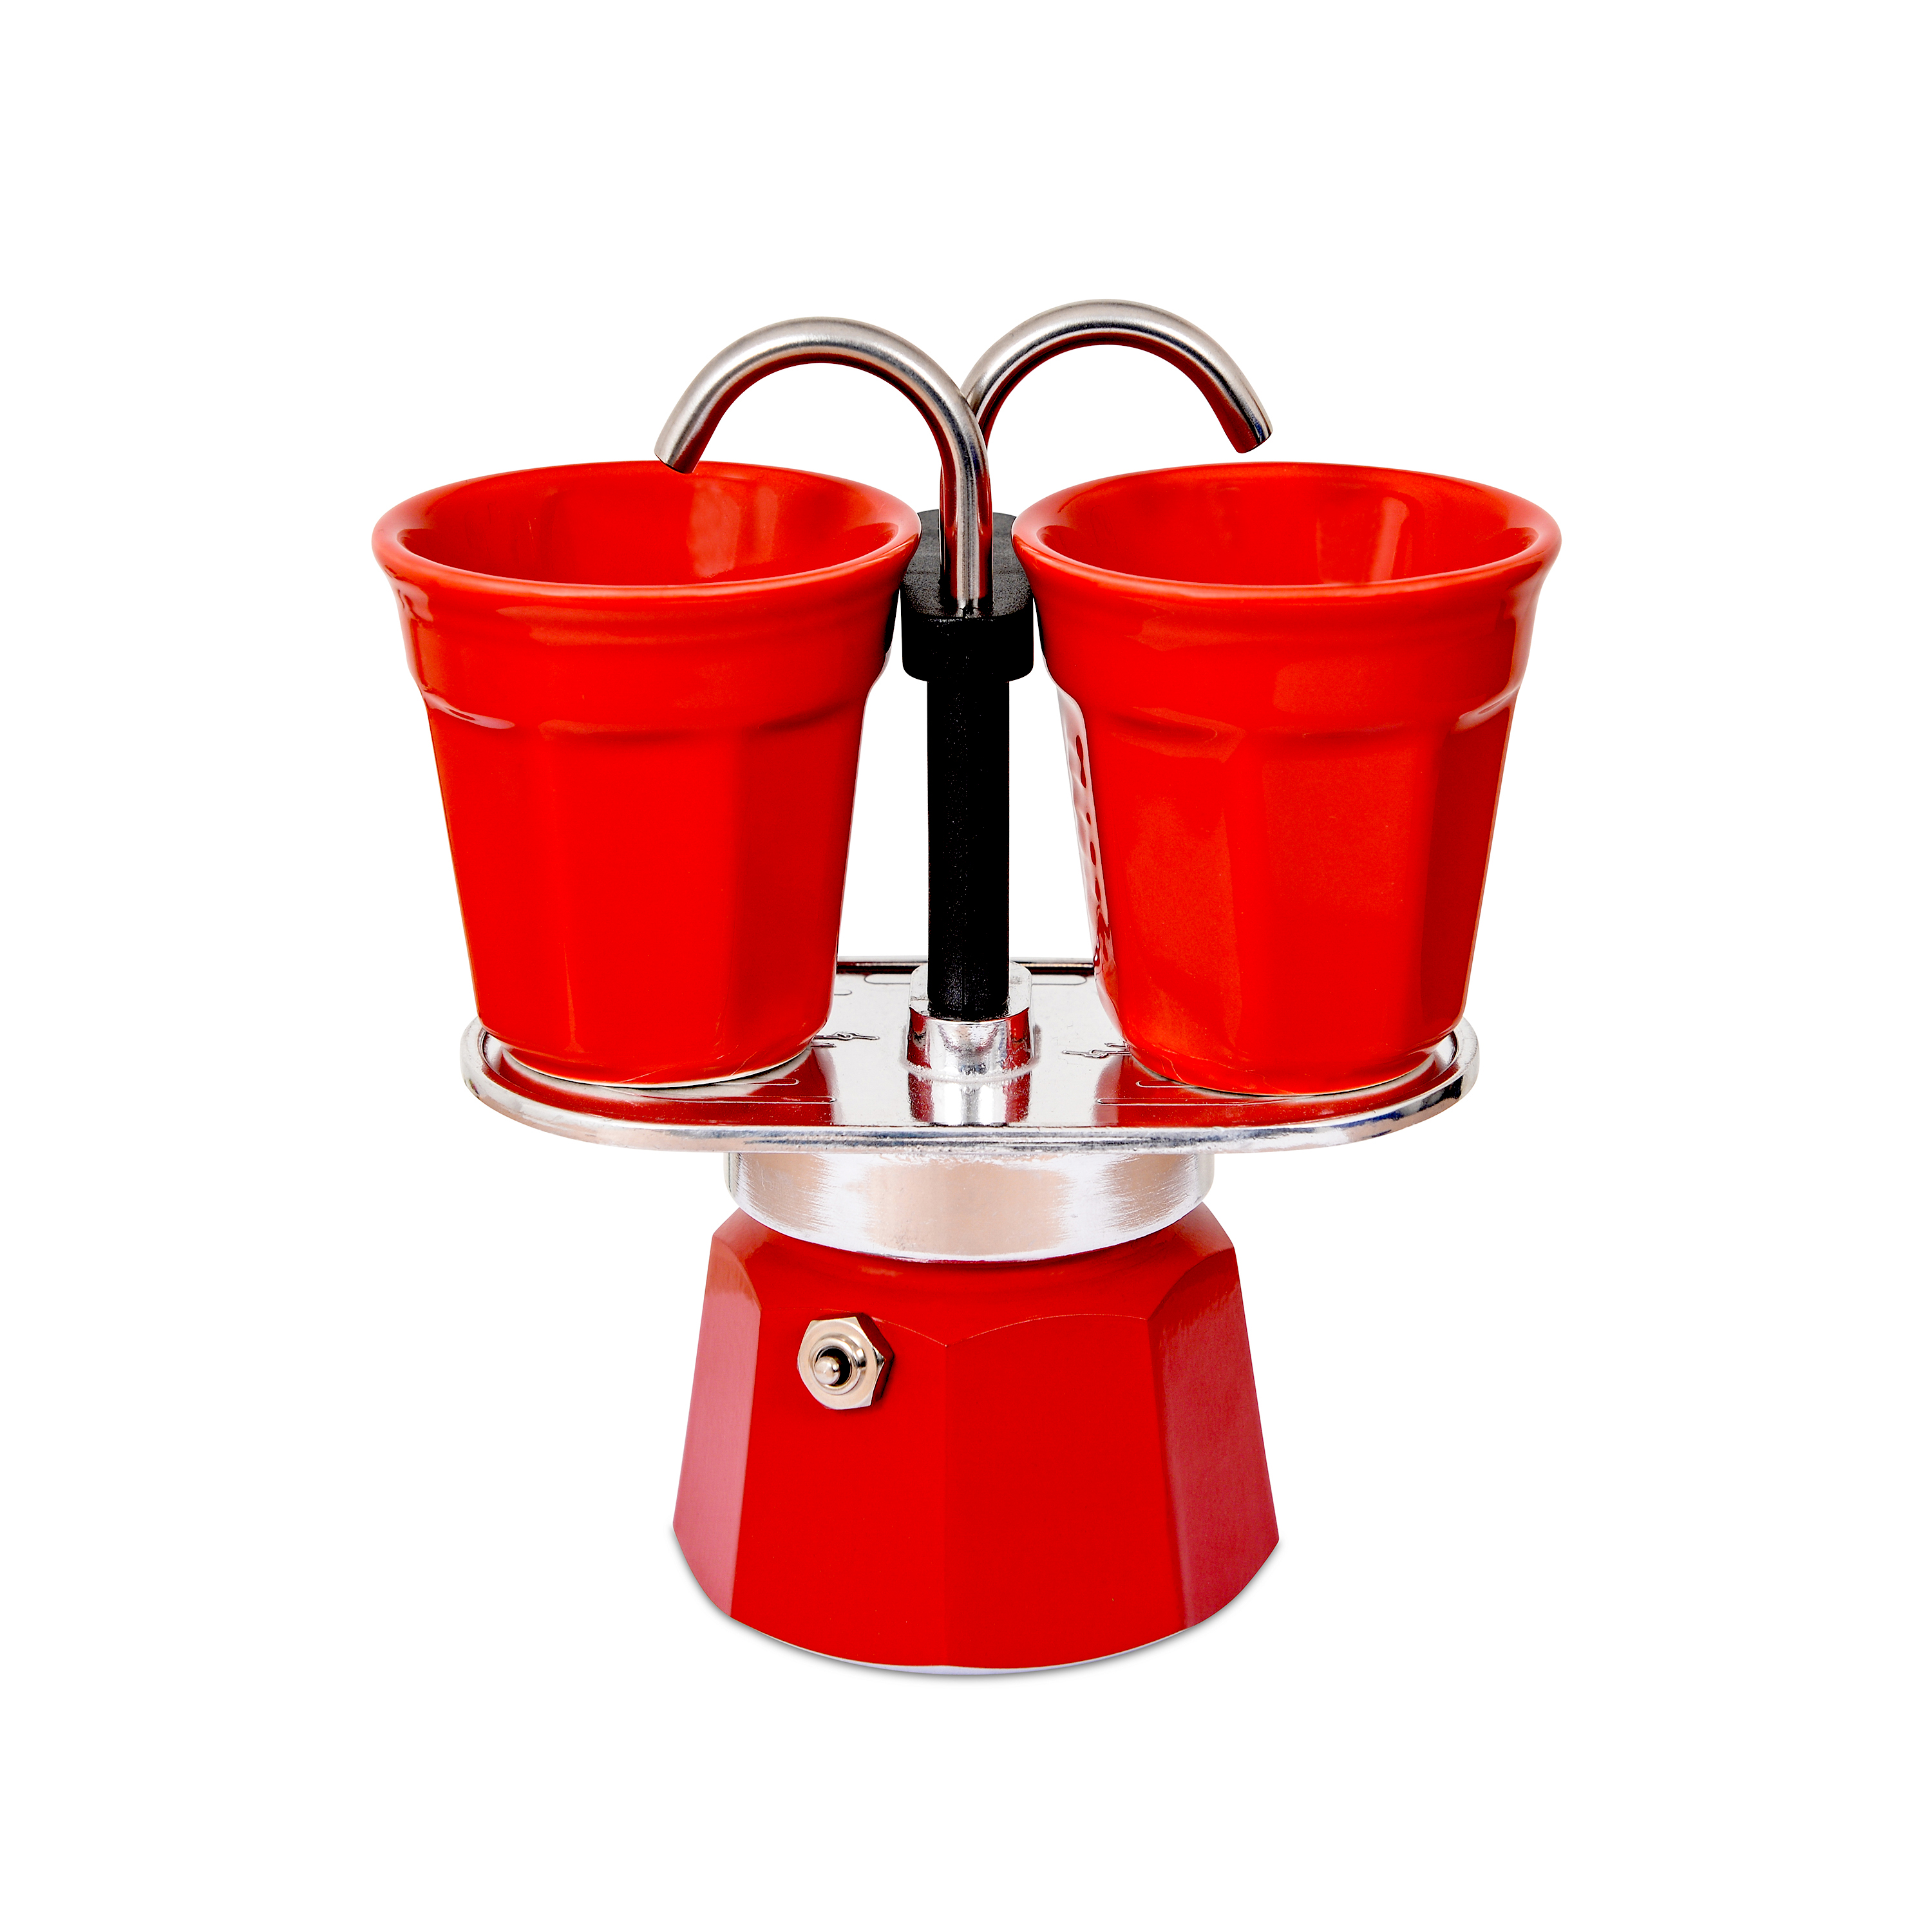 Image of Bialetti Mini Express Double Stovetop